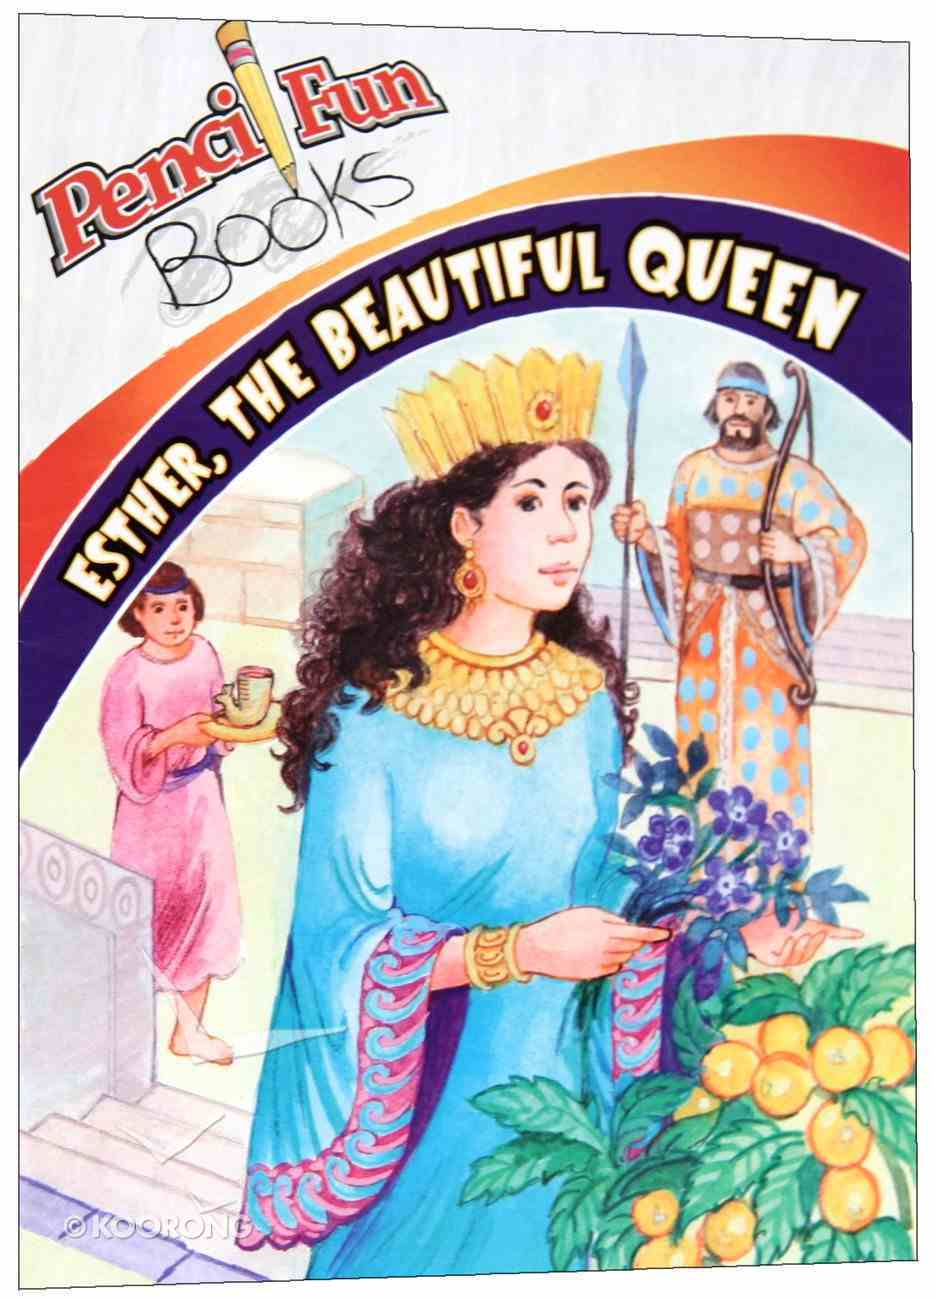 Esther Beautiful Queen (Pencil Fun Books Series) Paperback